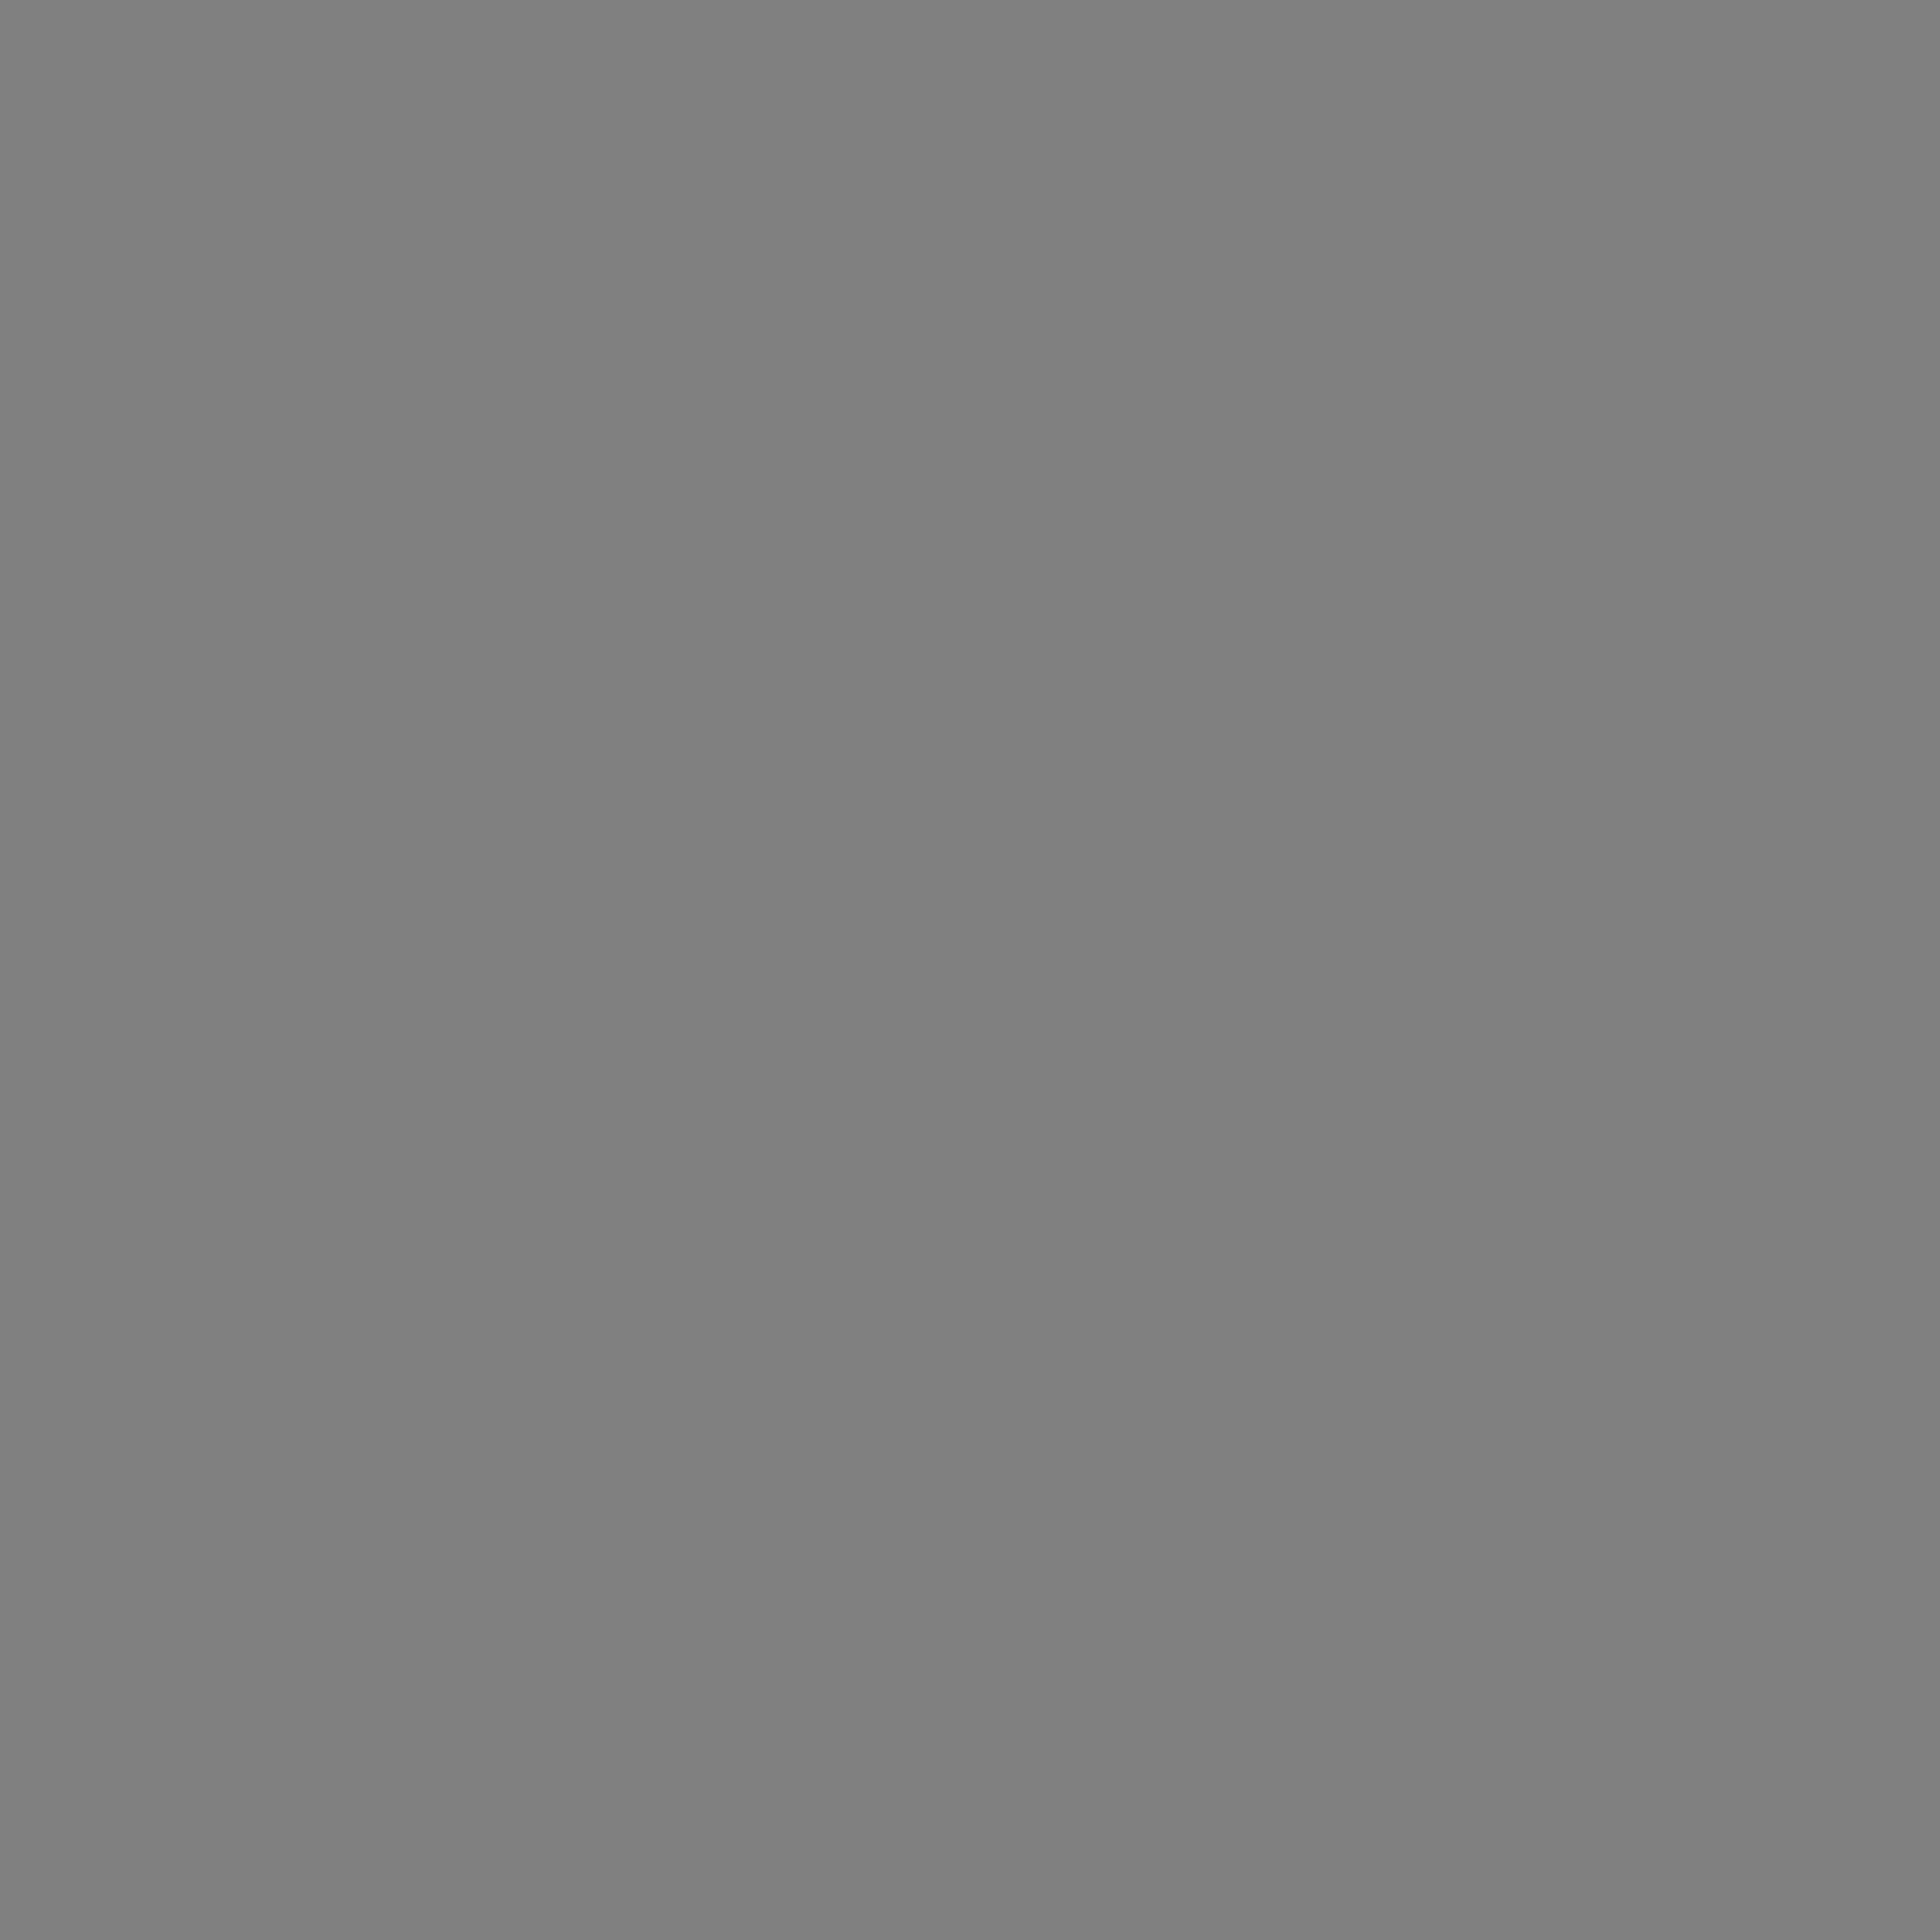 2732x2732 Gray Solid Color Background